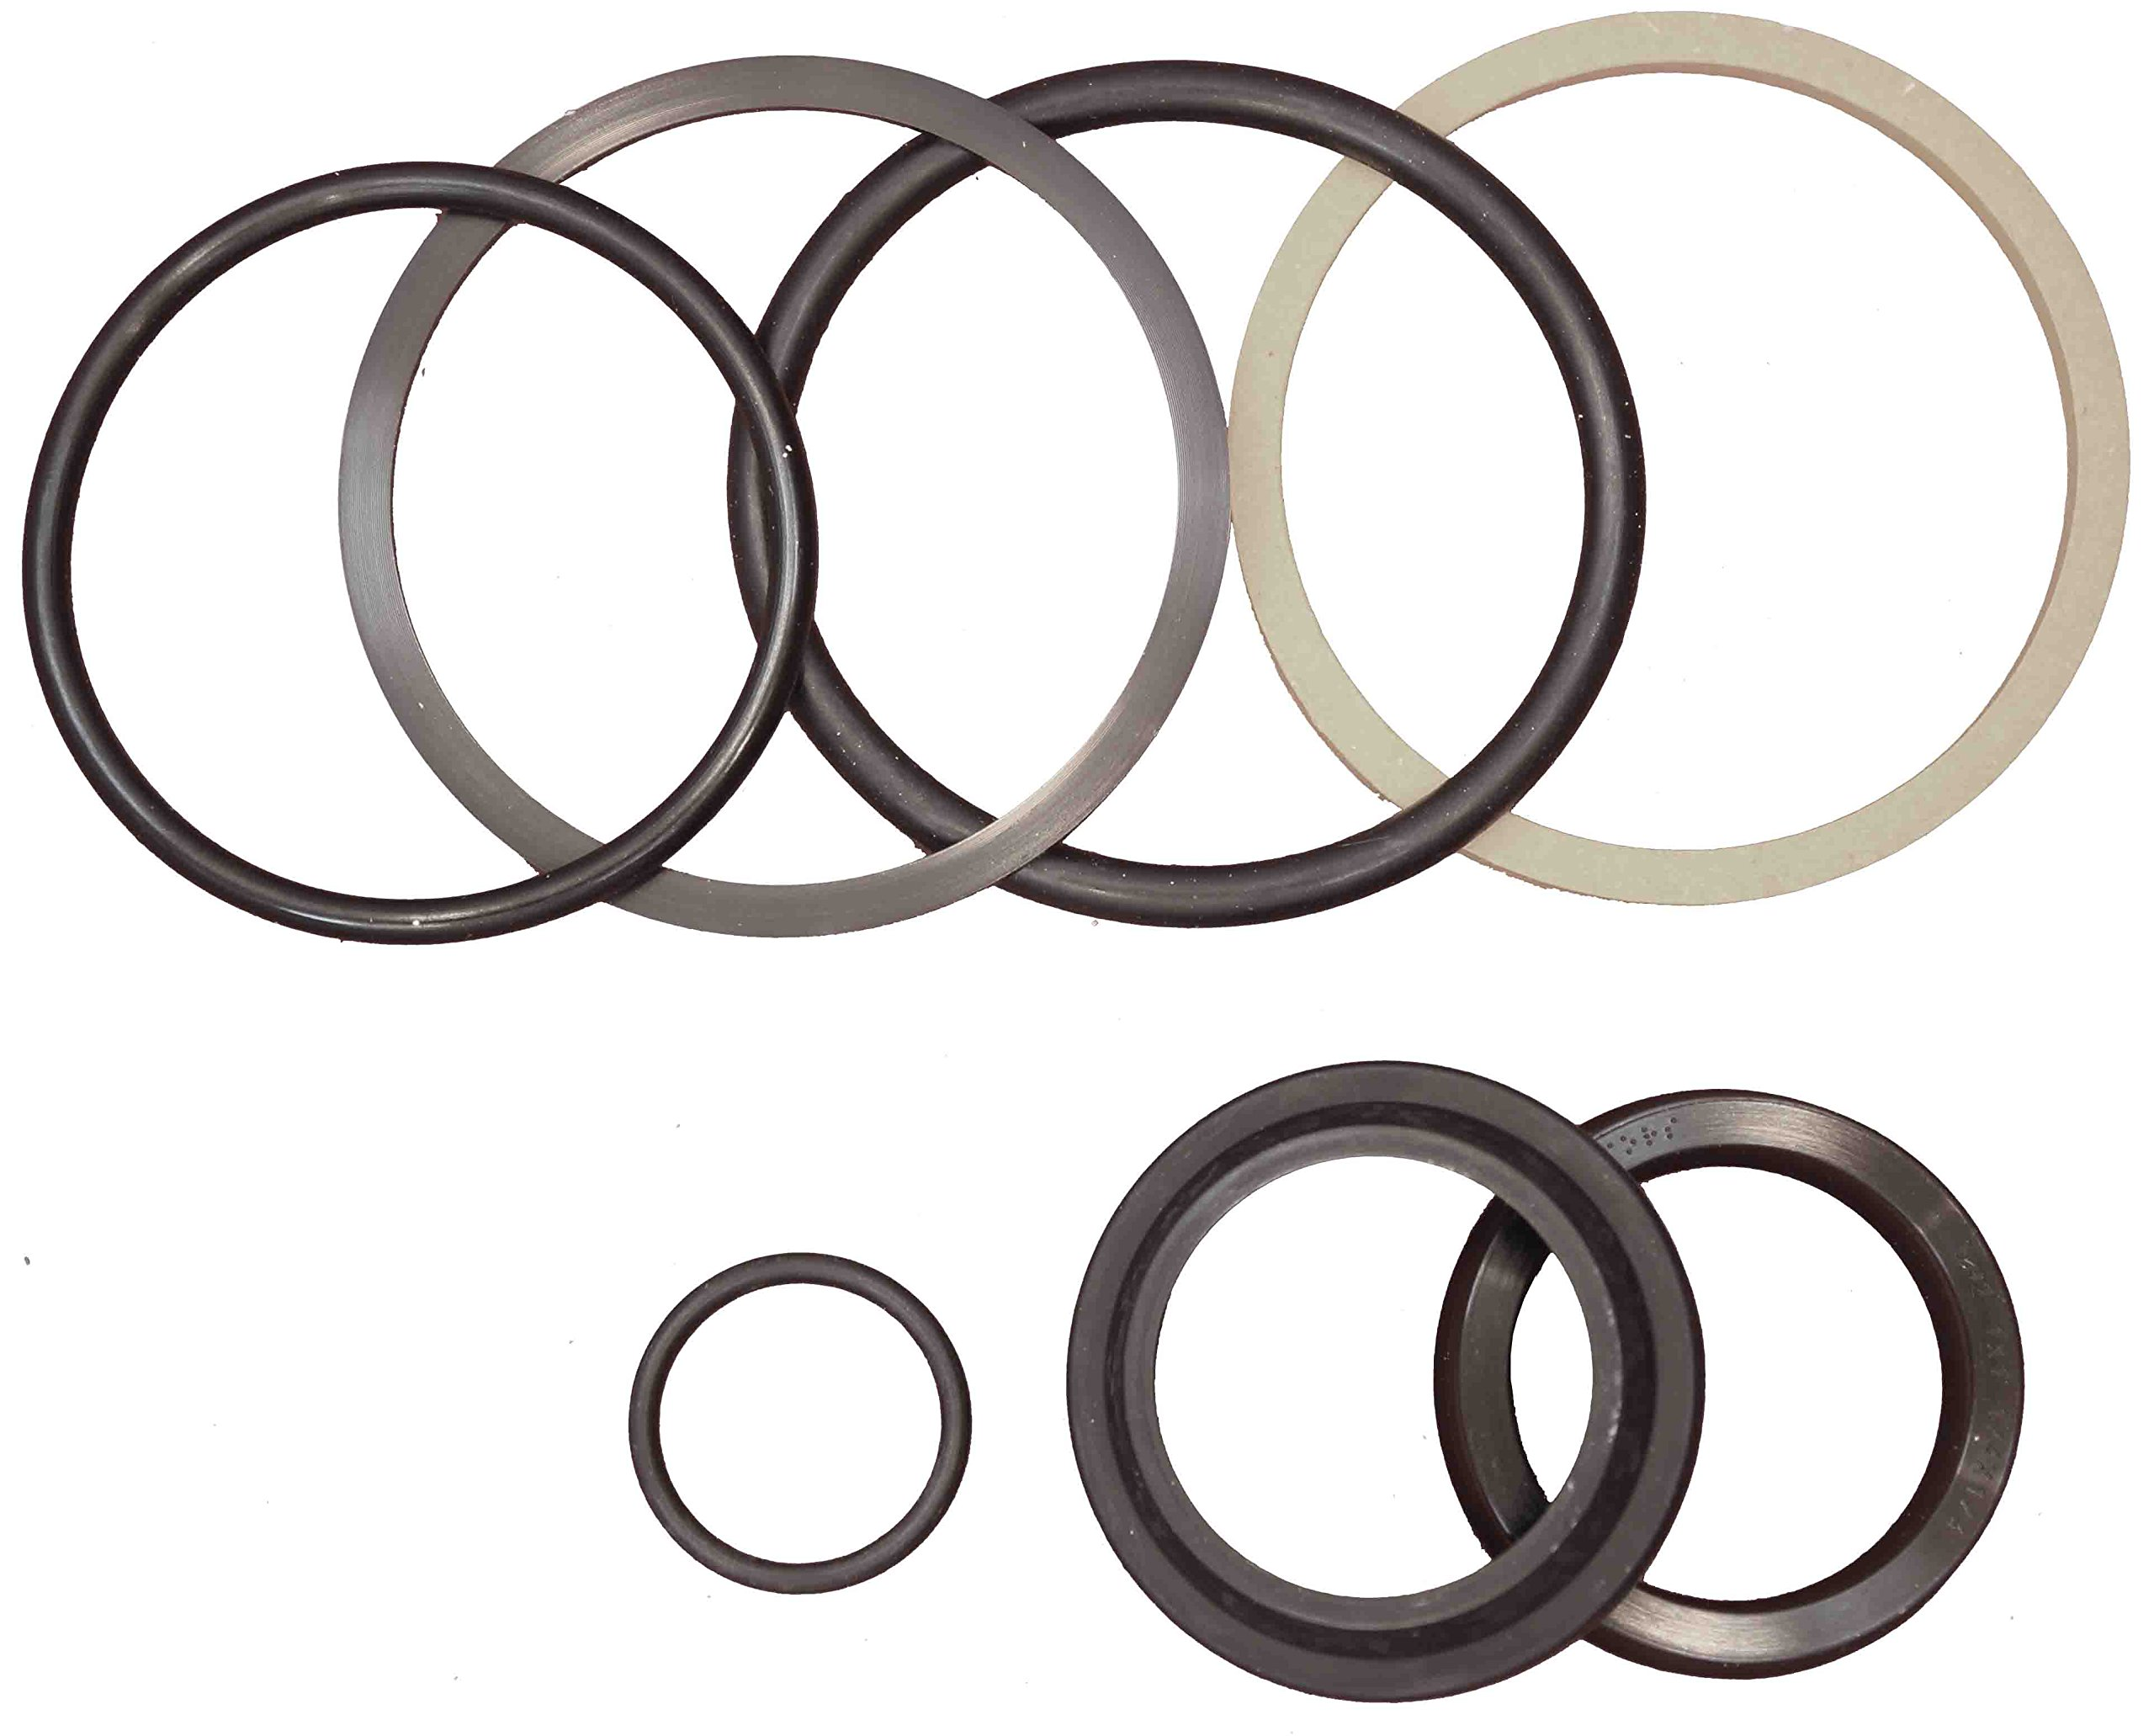 CASE D61006 HYDRAULIC CYLINDER SEAL KIT